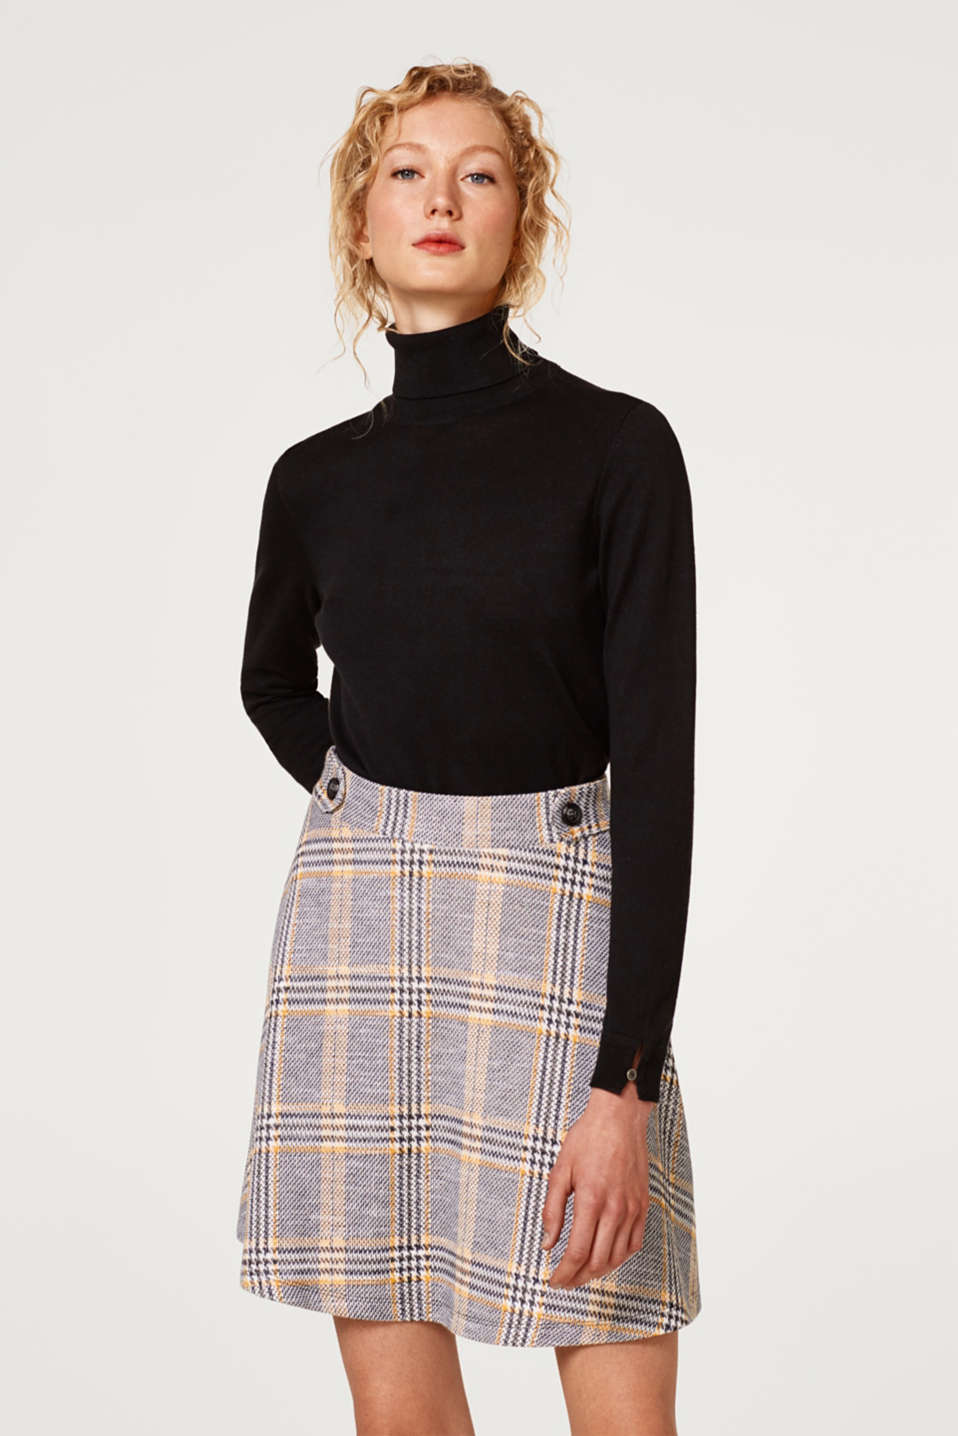 Esprit - Fashionable A-line skirt with a Prince of Wales check